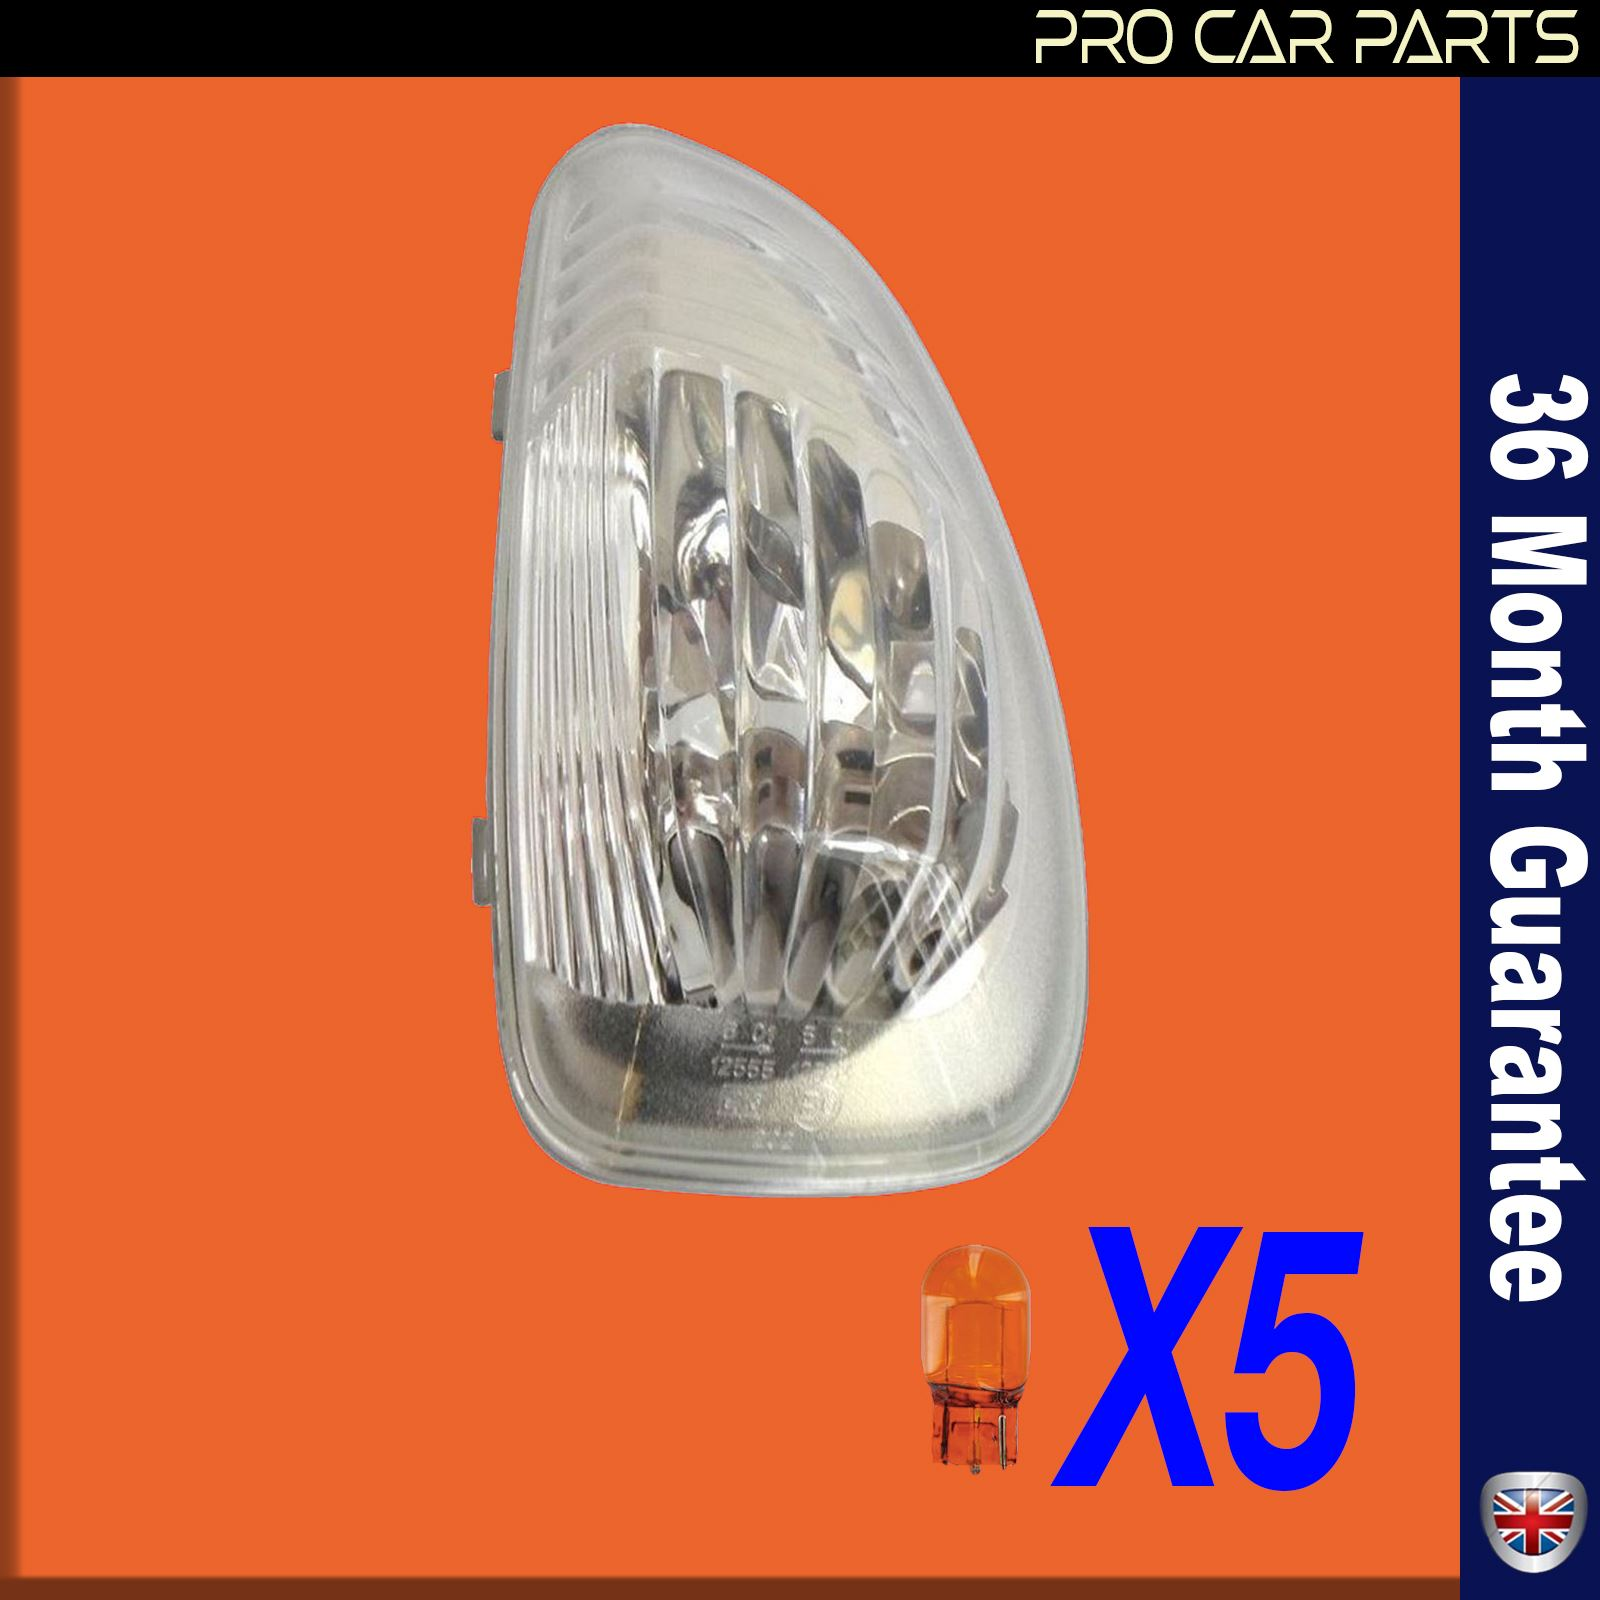 Renault Master MK3 wing mirror light side indicator lens clear right side